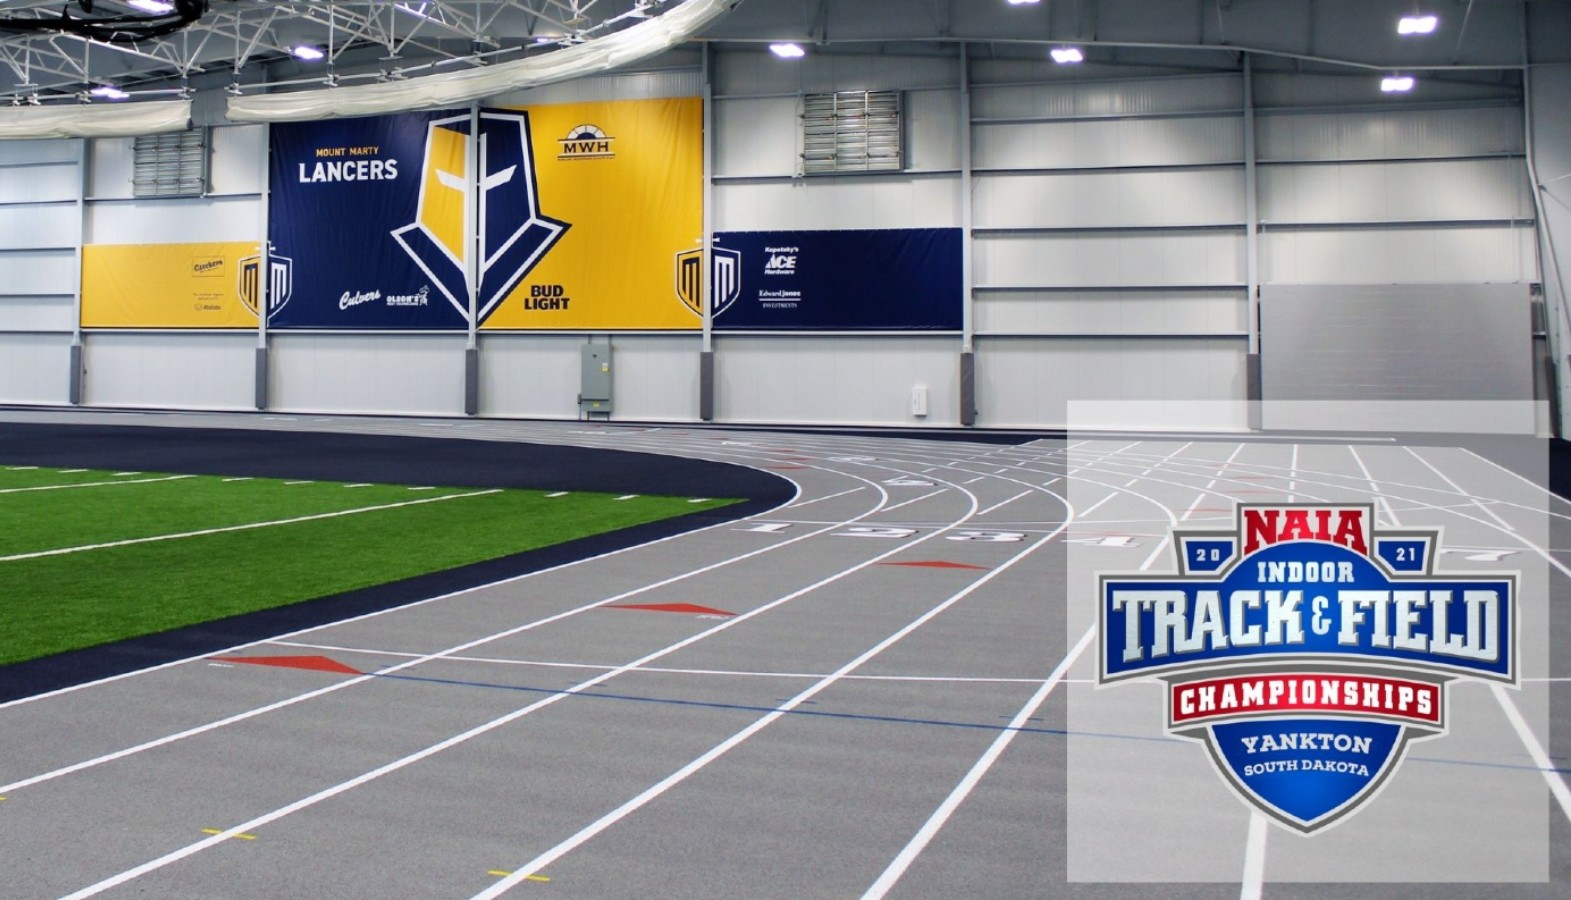 NAIA Men's and Women's Indoor Track and Field